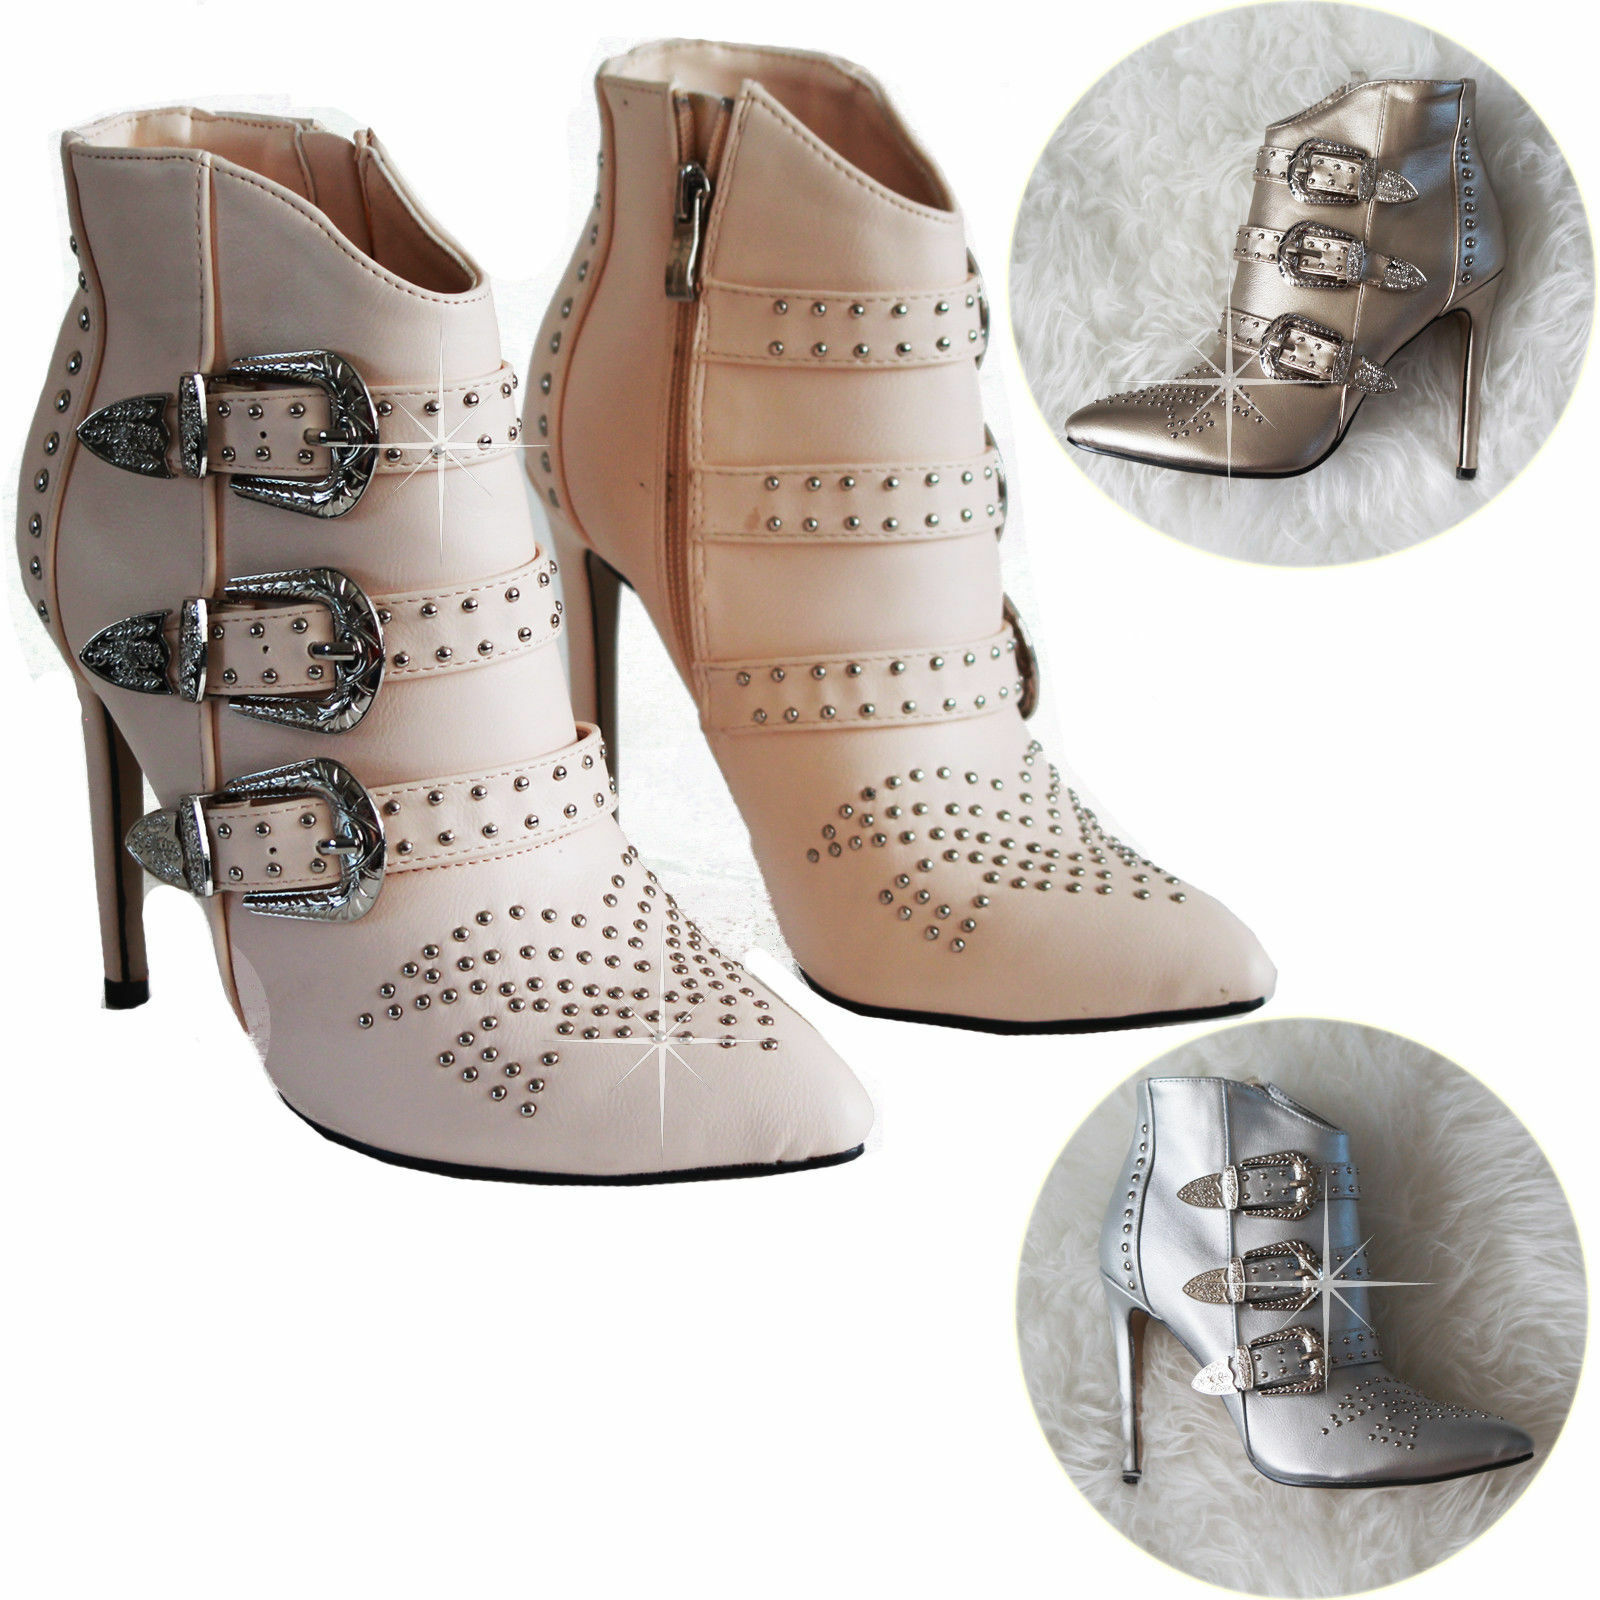 Women's Shoes Ladies High Heels Pointed-Toe Stiletto Shoes Women's Ankle Straps Shinny Shoes d98a76